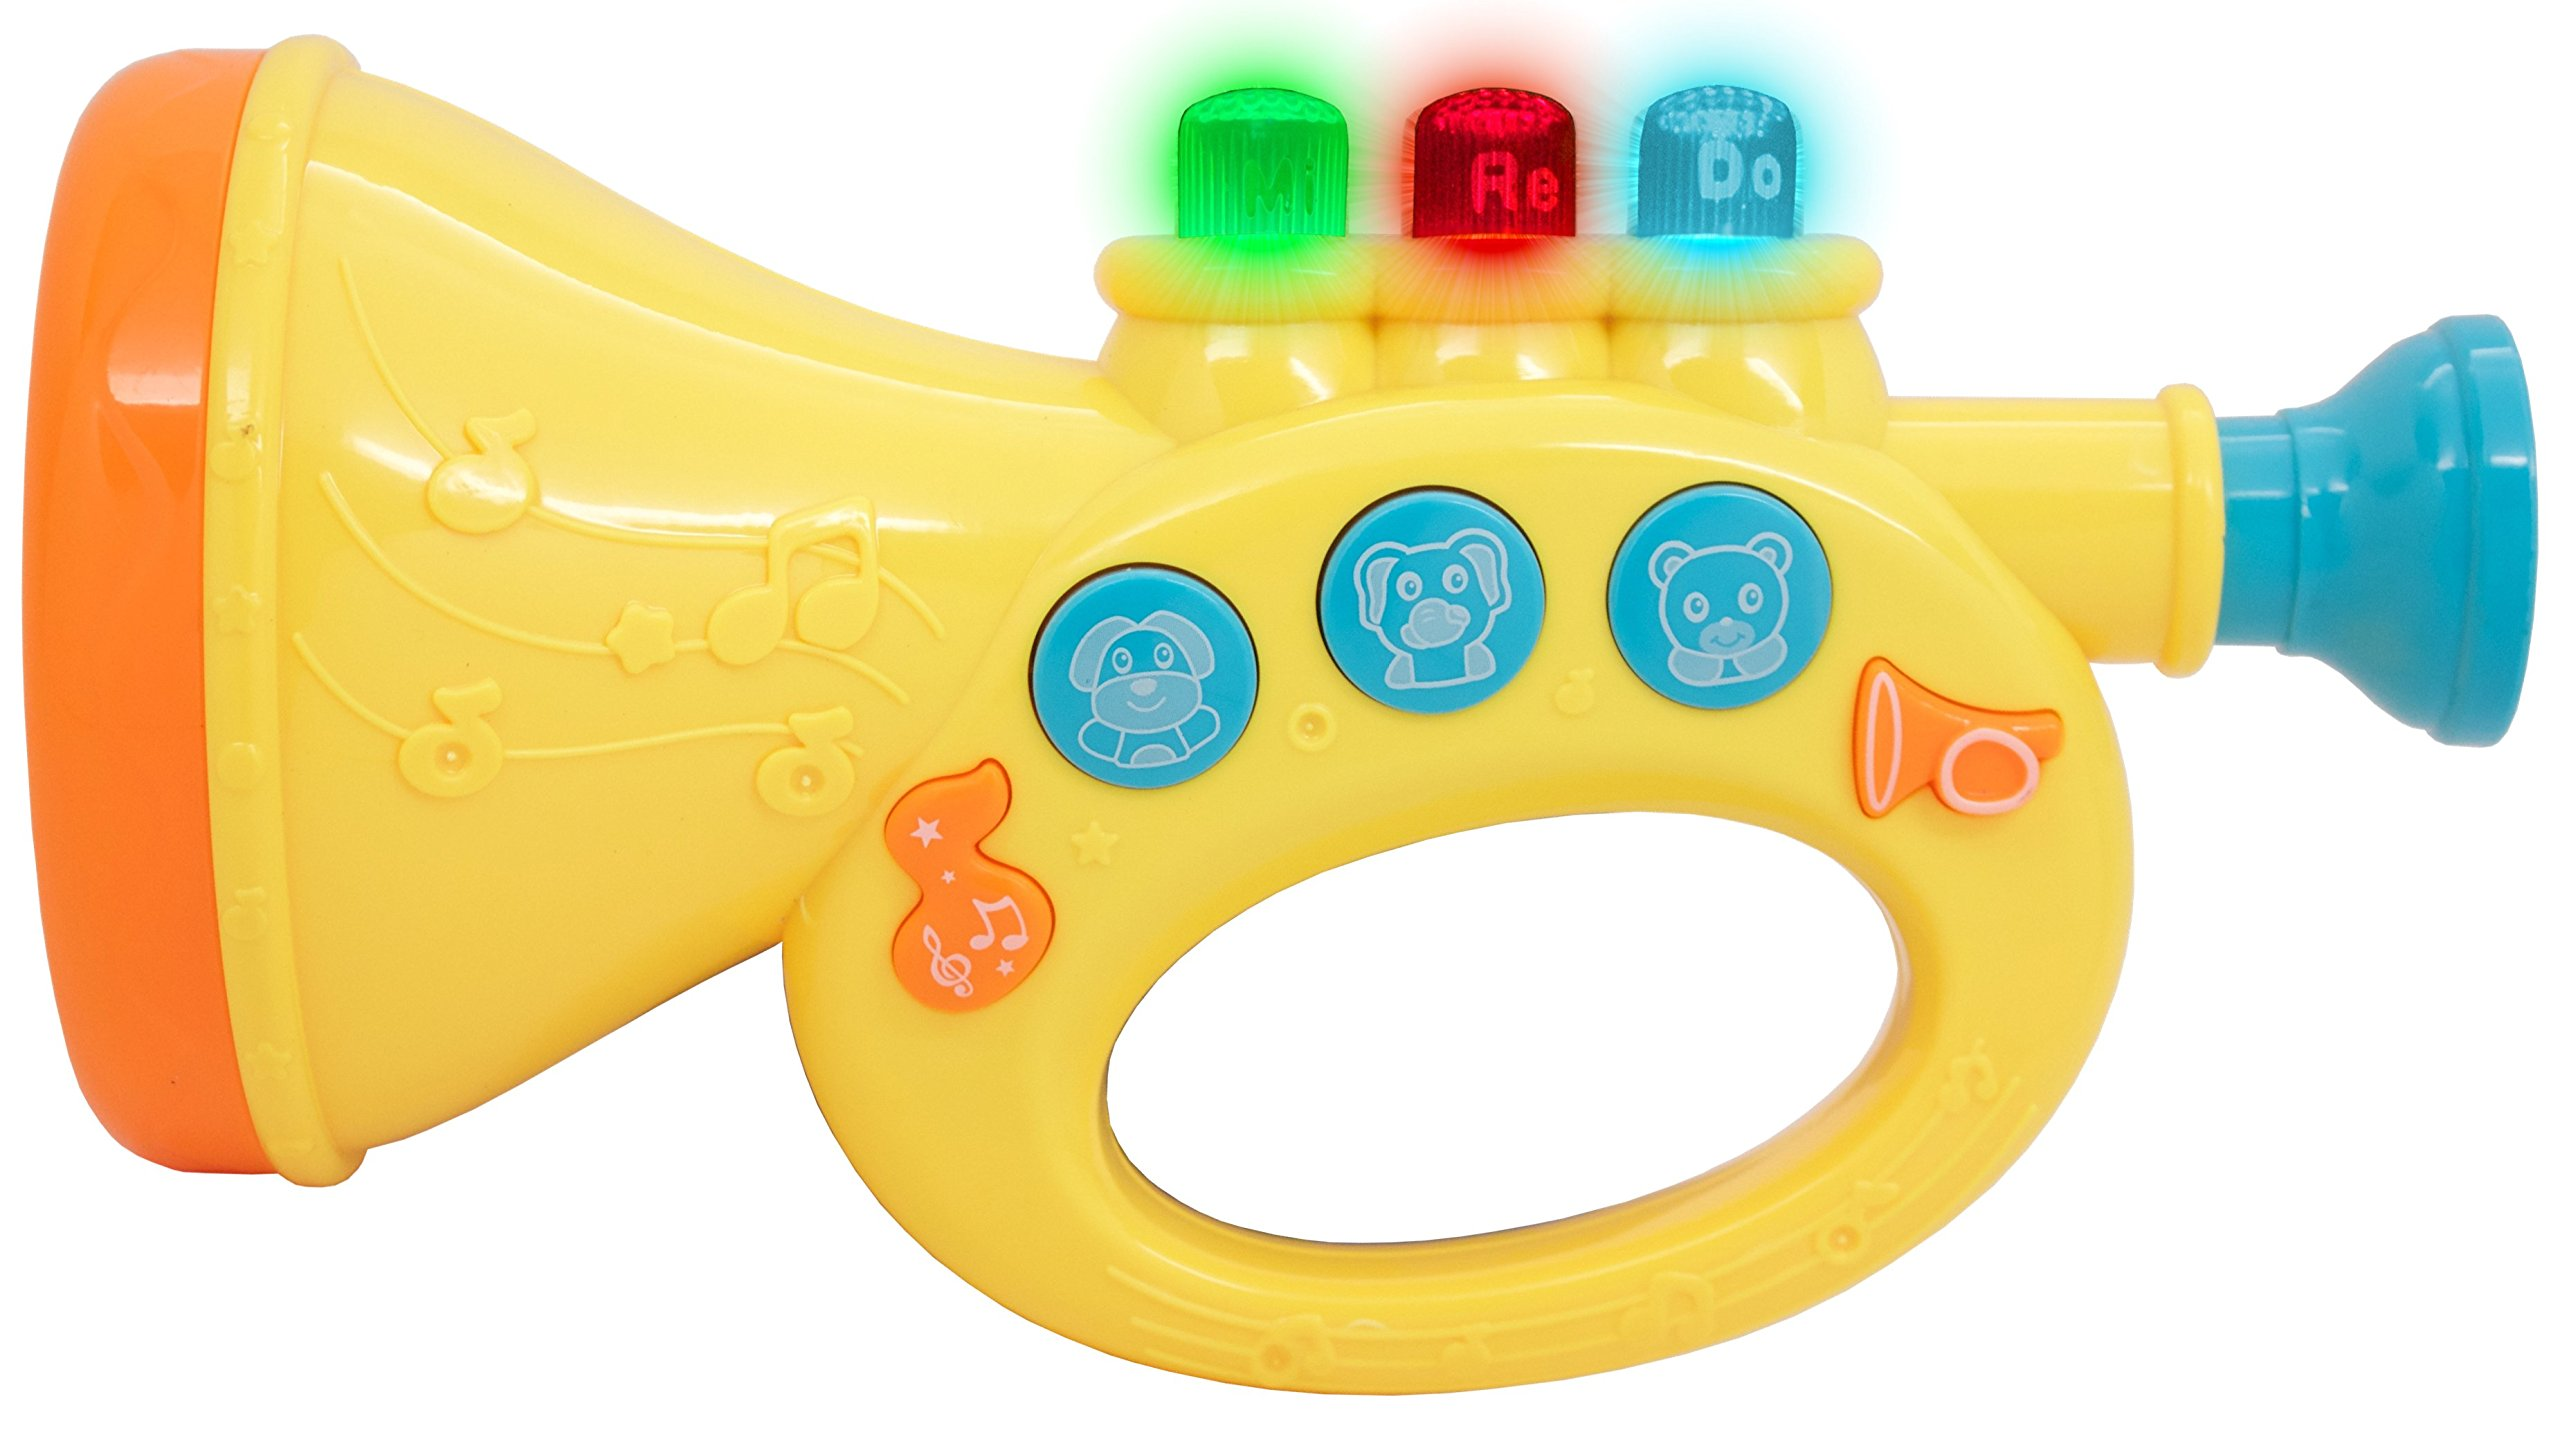 TECHEGE Toys Learn'n'Play Large Musical Trumpet Fun Lights Music Jukebox Great for Kids Beginner Trumpet by Techege Toys